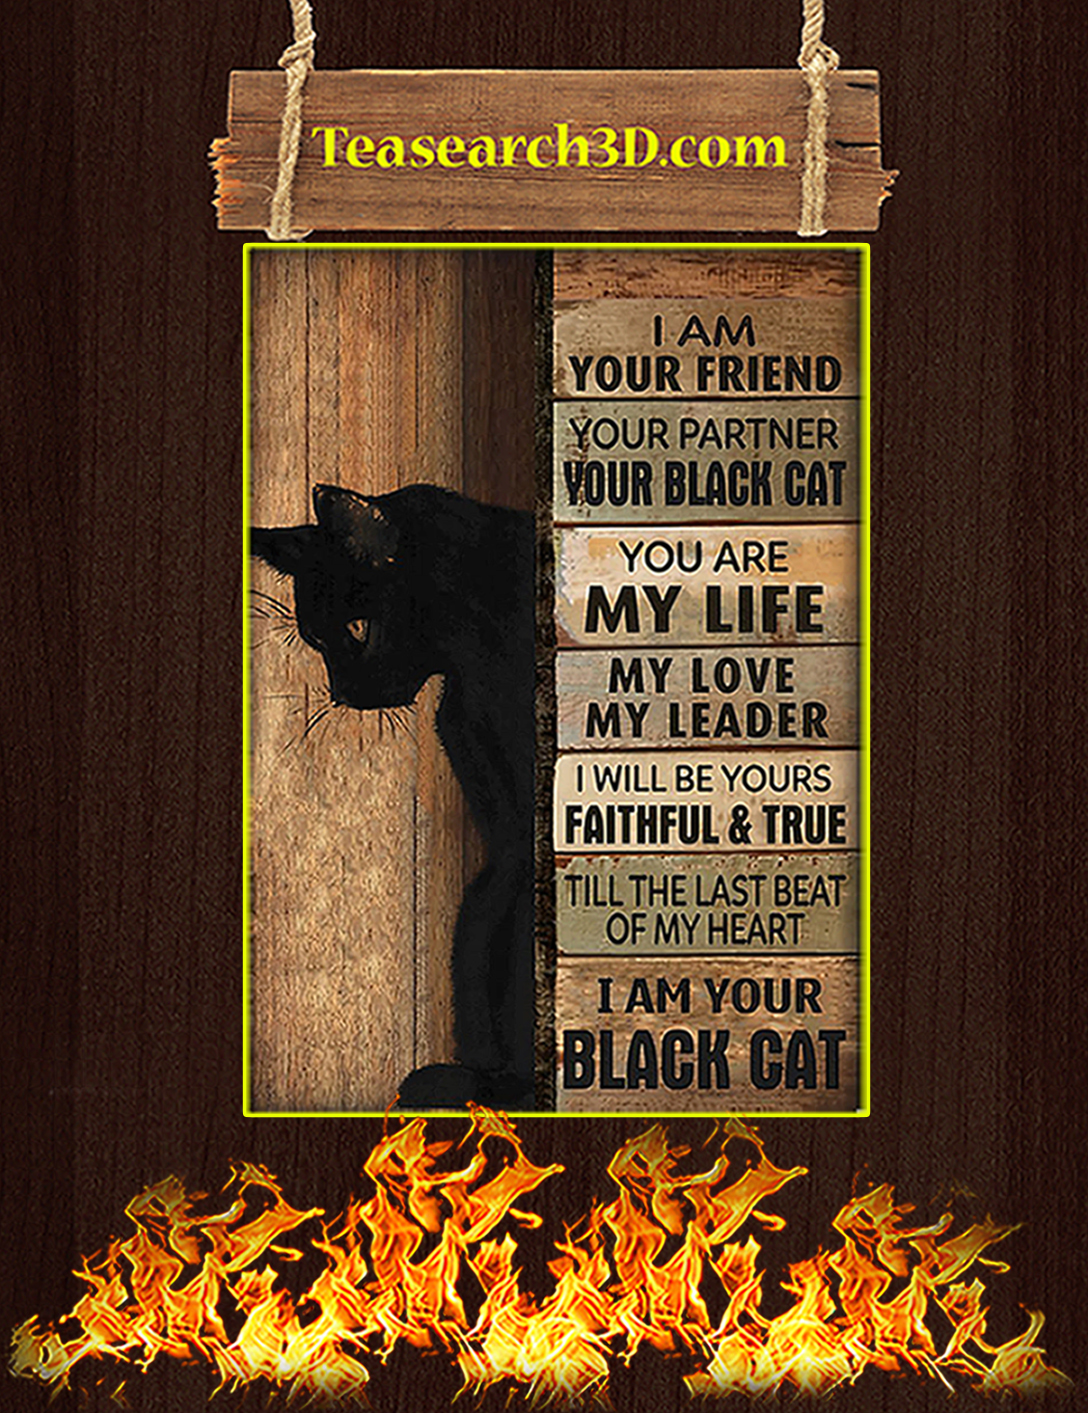 I am your friend your partner your black cat poster A2